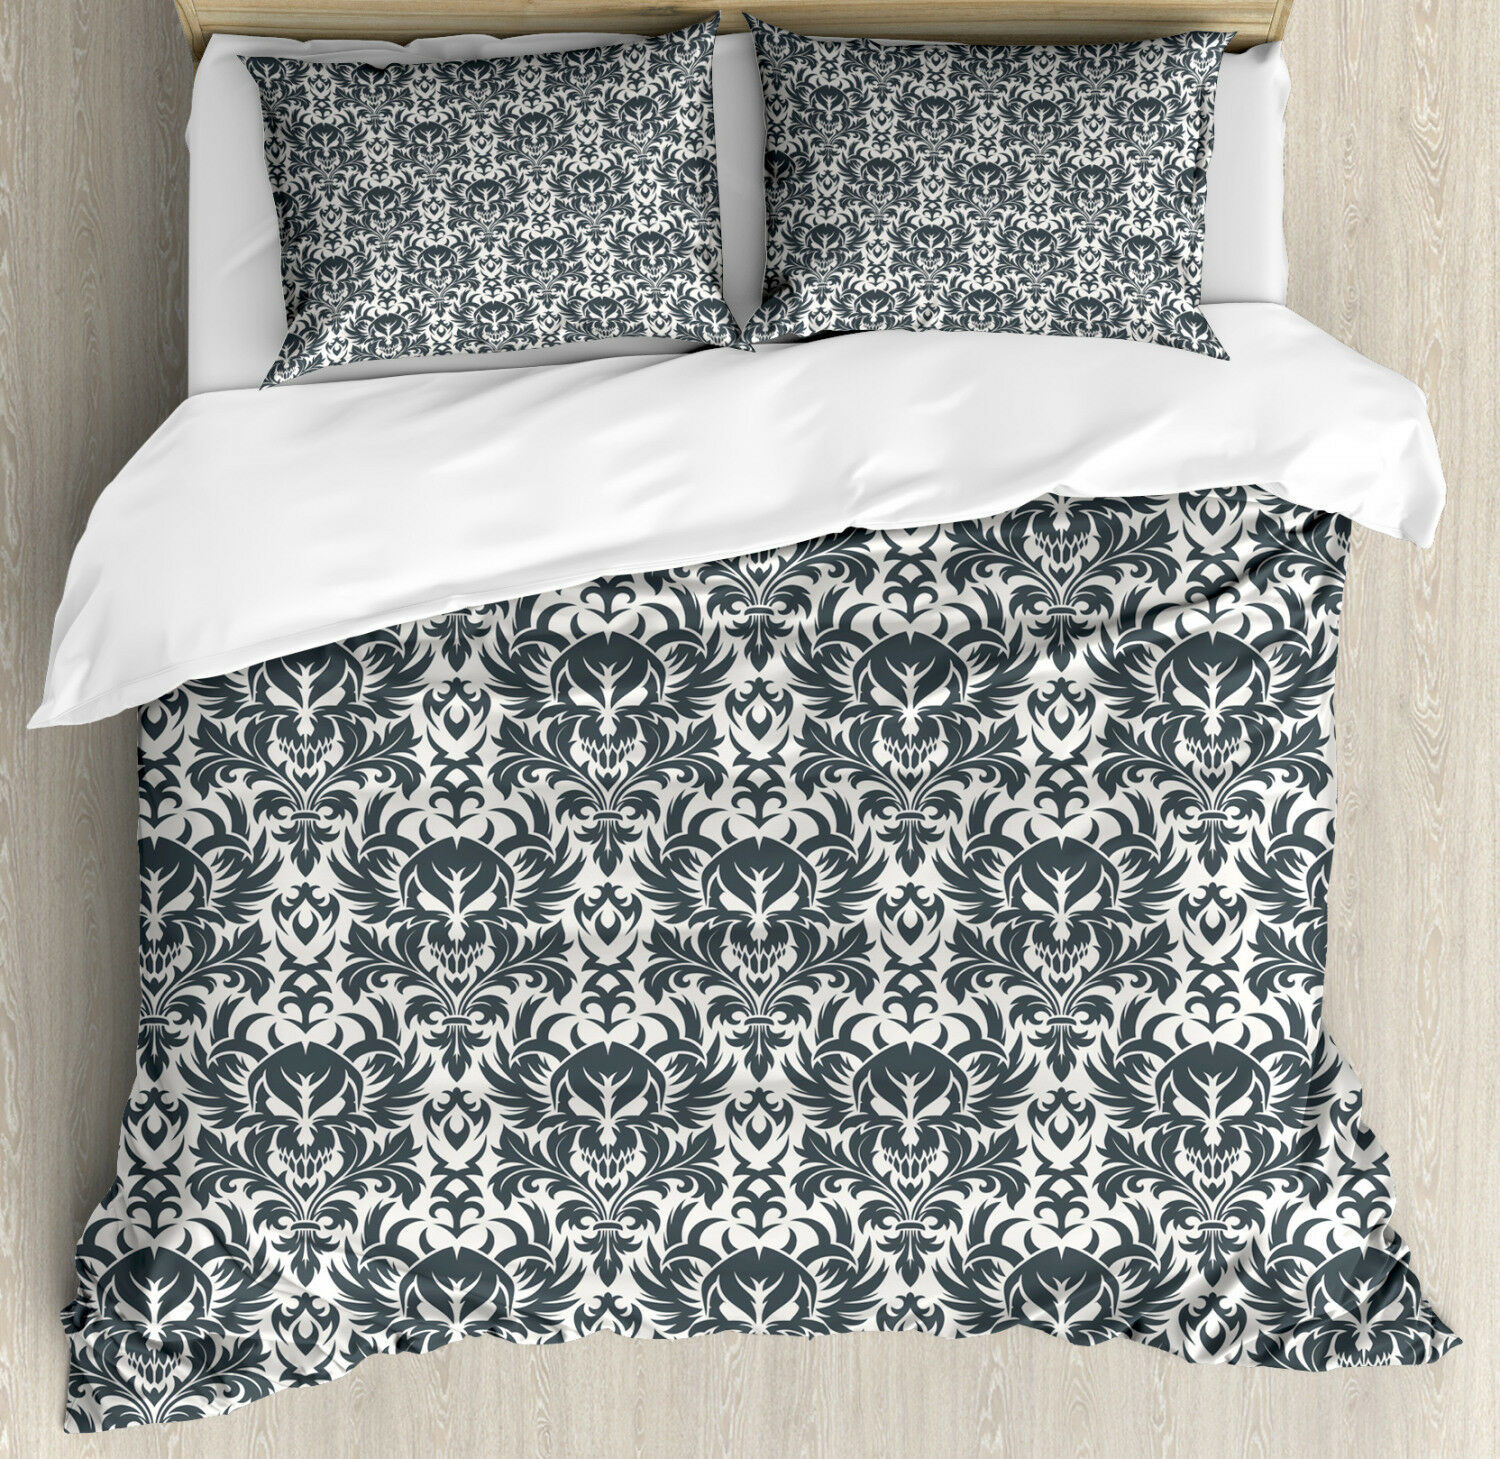 Gothic Duvet Cover Set with Pillow Shams Damask Inspirosso Flourish Print